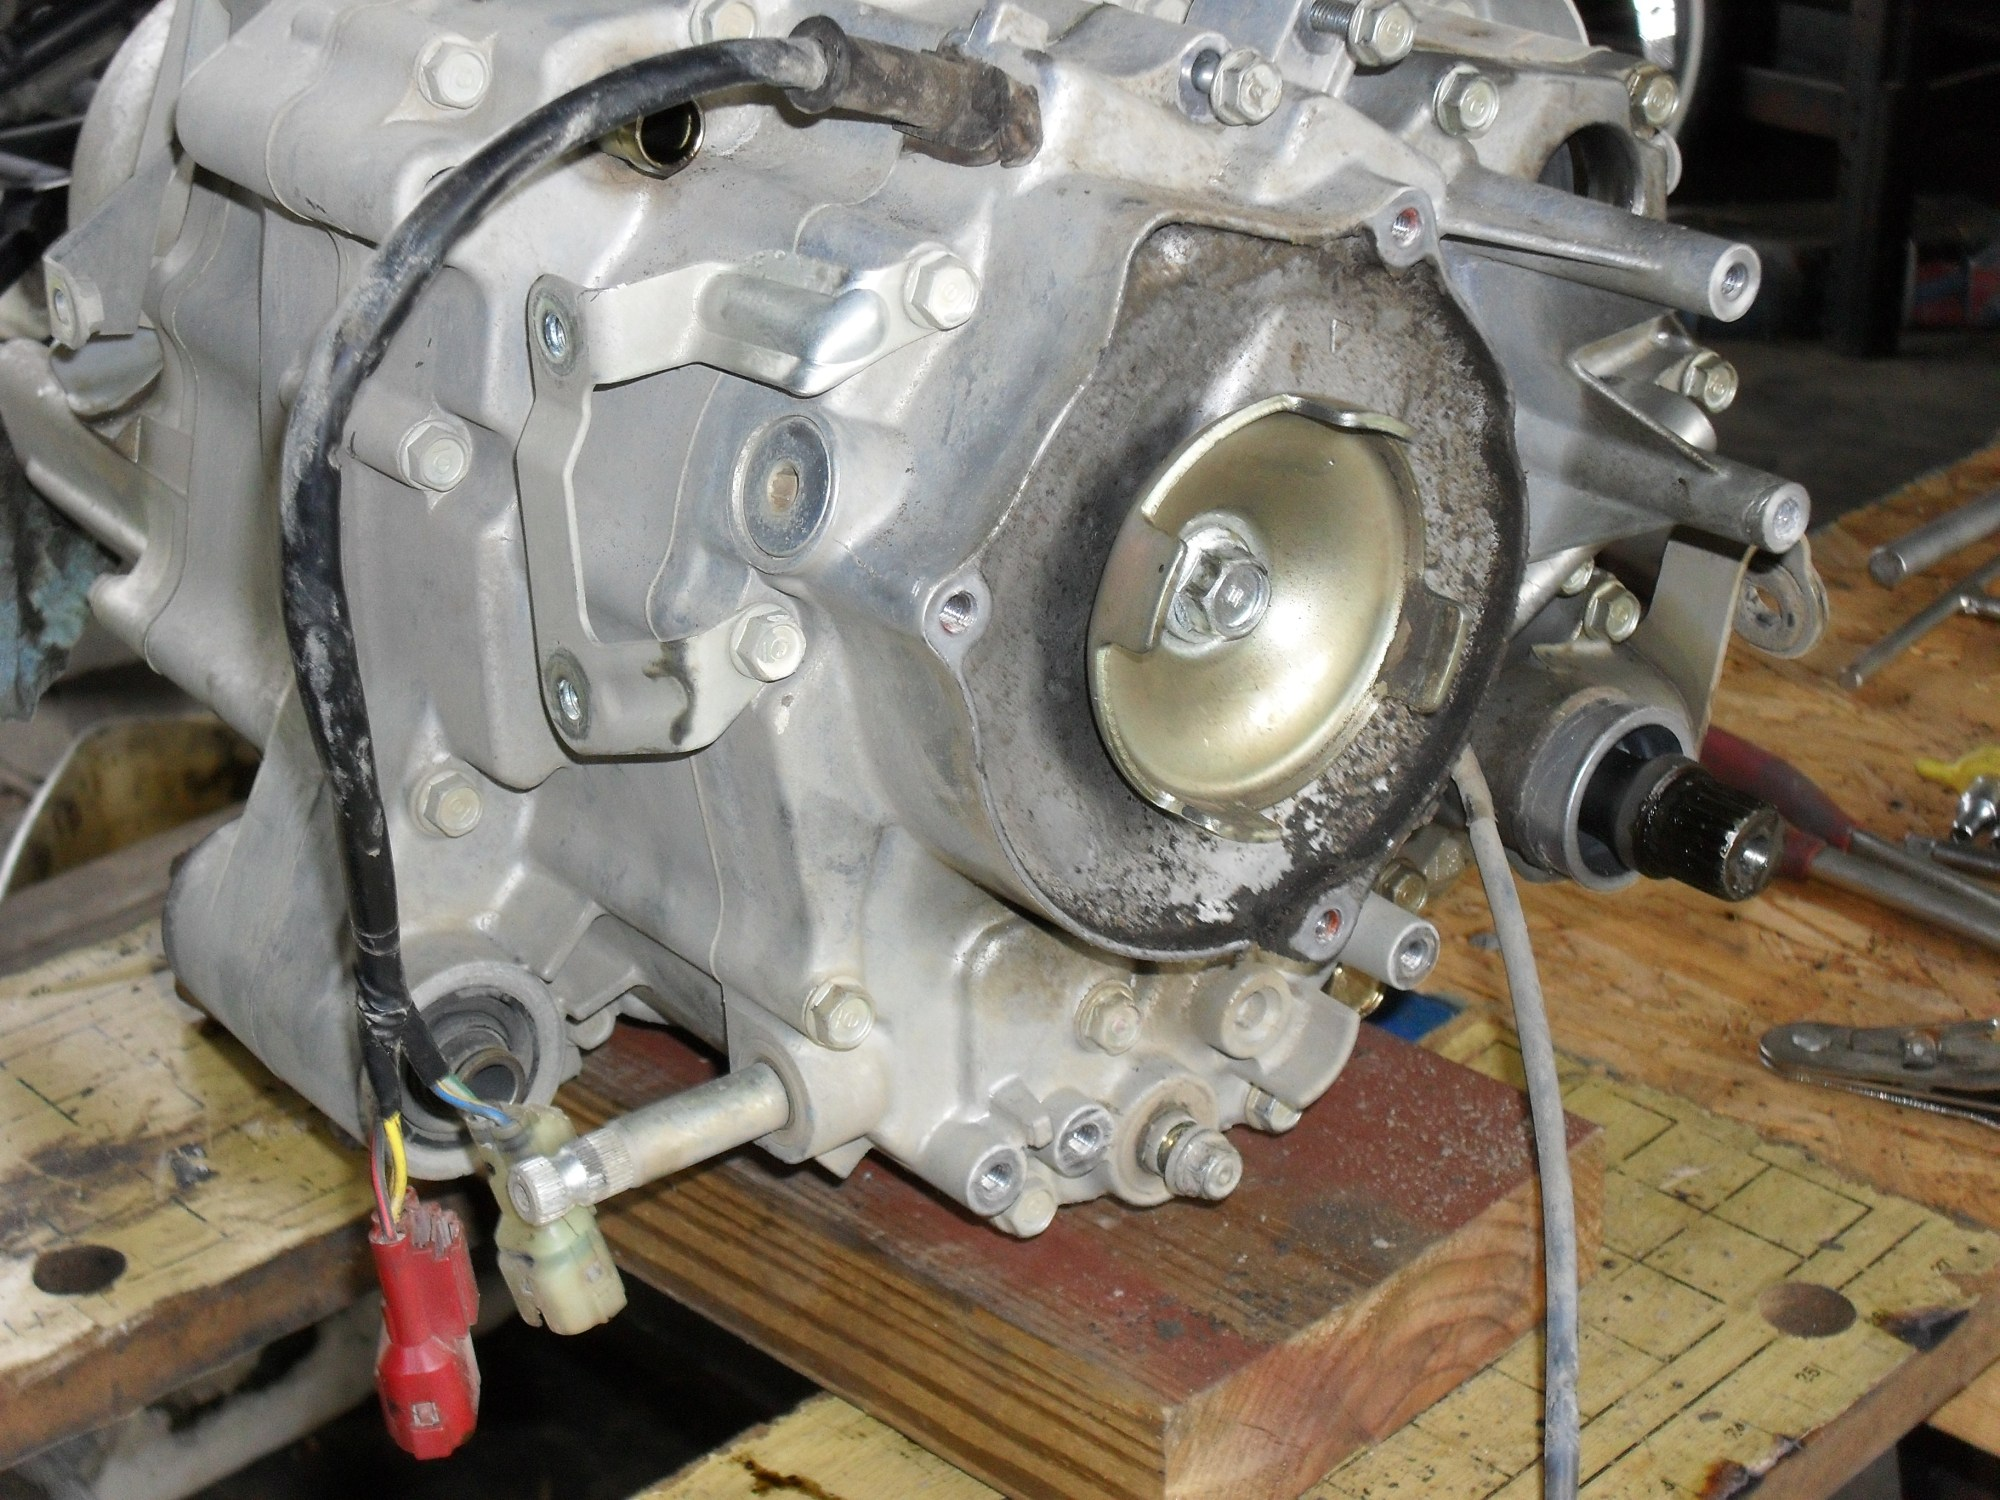 hight resolution of recon 250 into the engine motopsyco s asylum crazy about motorcycles honda recon 250 engine diagram honda recon engine diagram